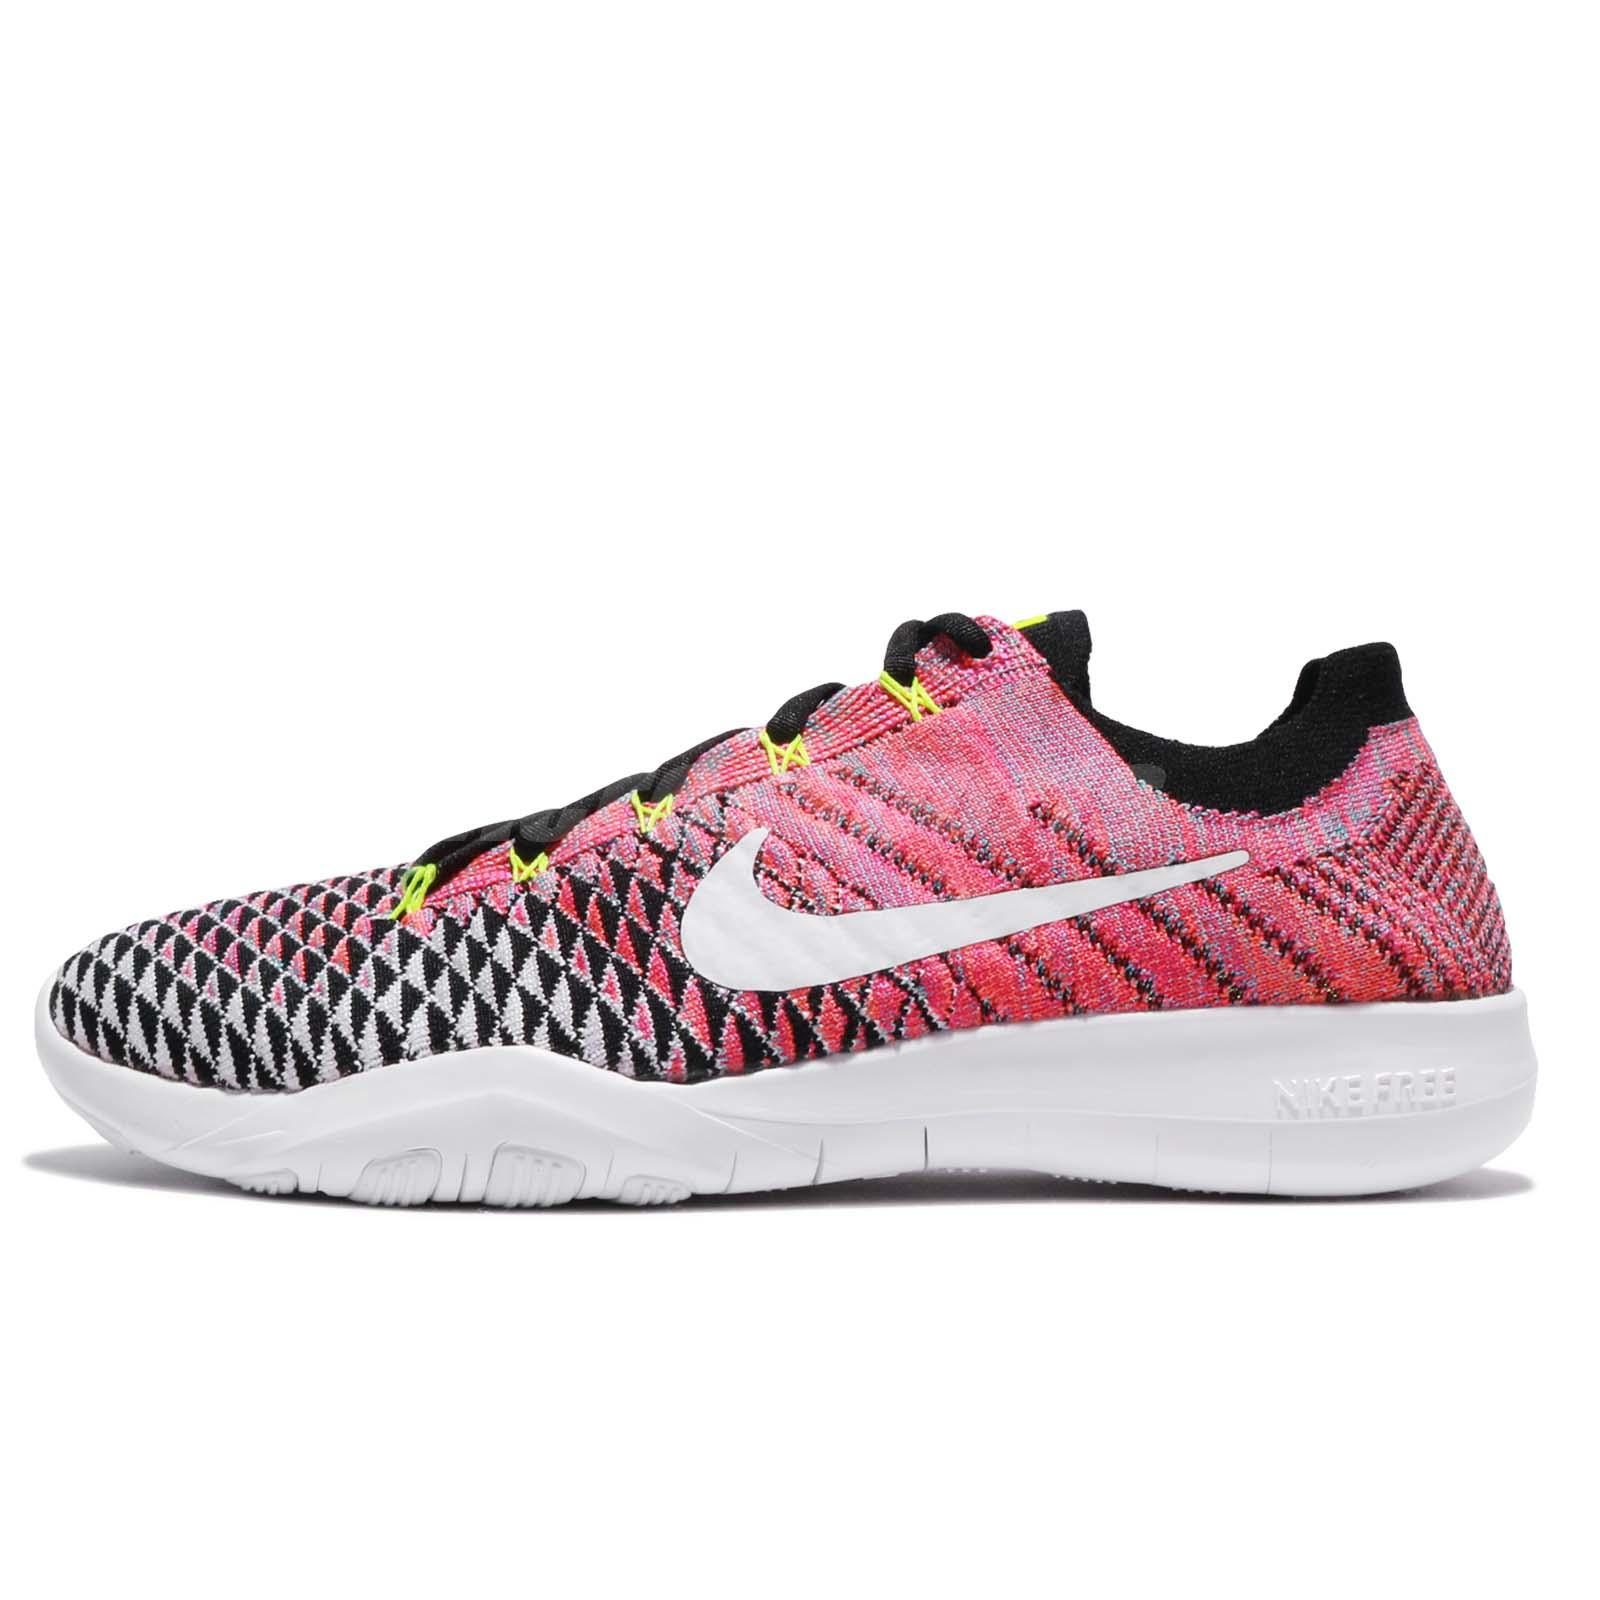 purchase cheap ad01a 056f4 Wmns Nike Free TR Flyknit 2 II Black Volt Pink Women Training Shoes  904658-006